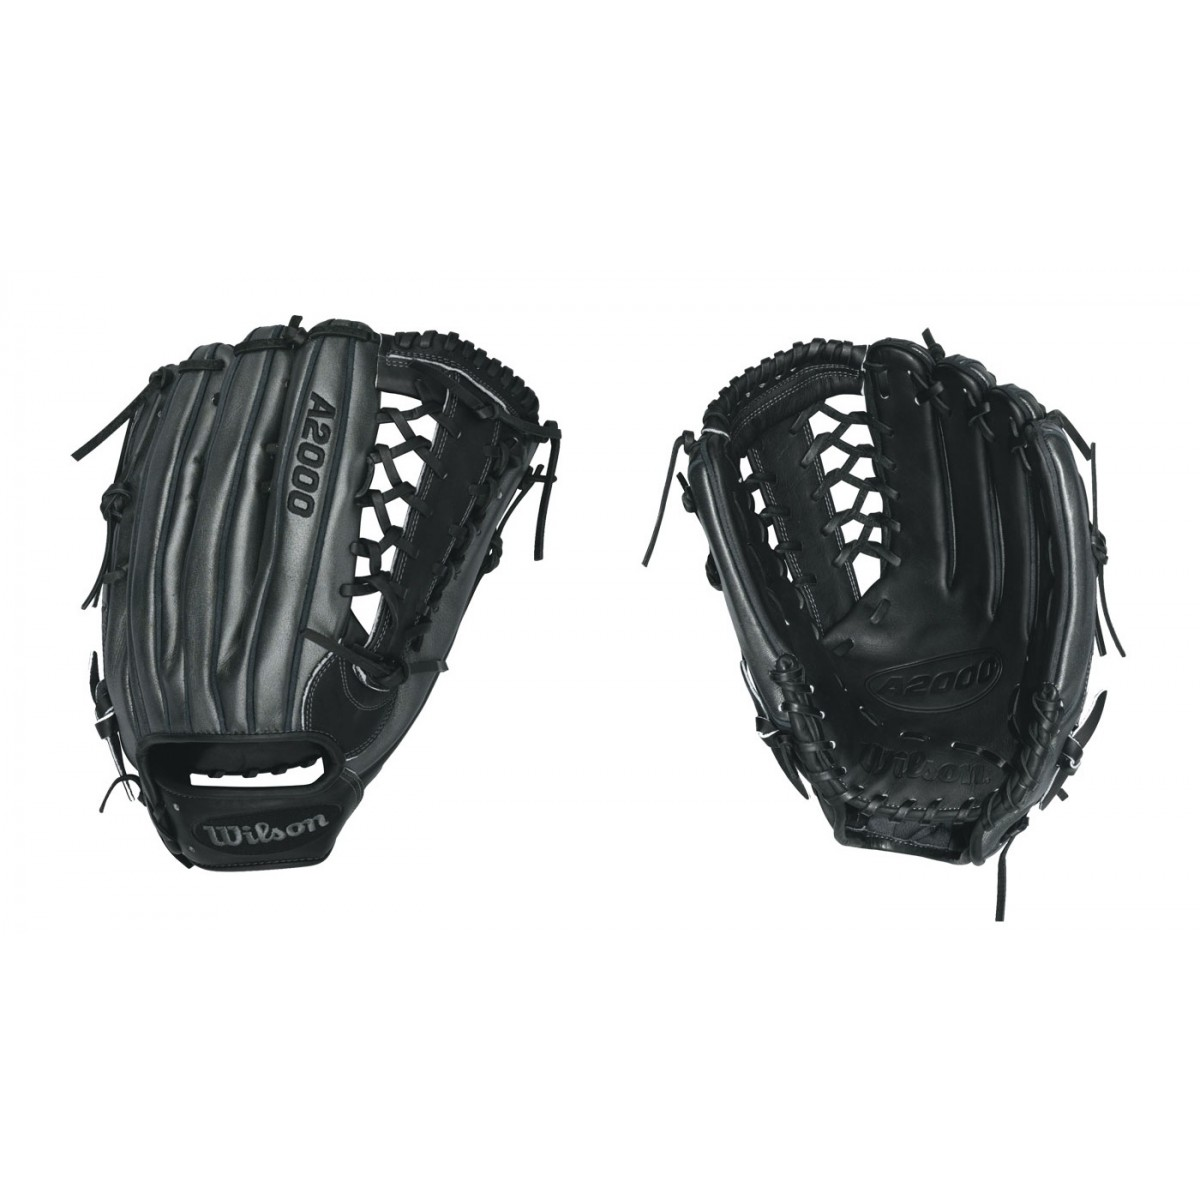 wilson-a2000-kp92-12-5-inch-outfield-baseball-glove-right-handed-throw A2000BBKP92-Right Handed Throw Wilson 887768113858 The Wilson A2000 puts unbeatable craftsmanship in the palm of your